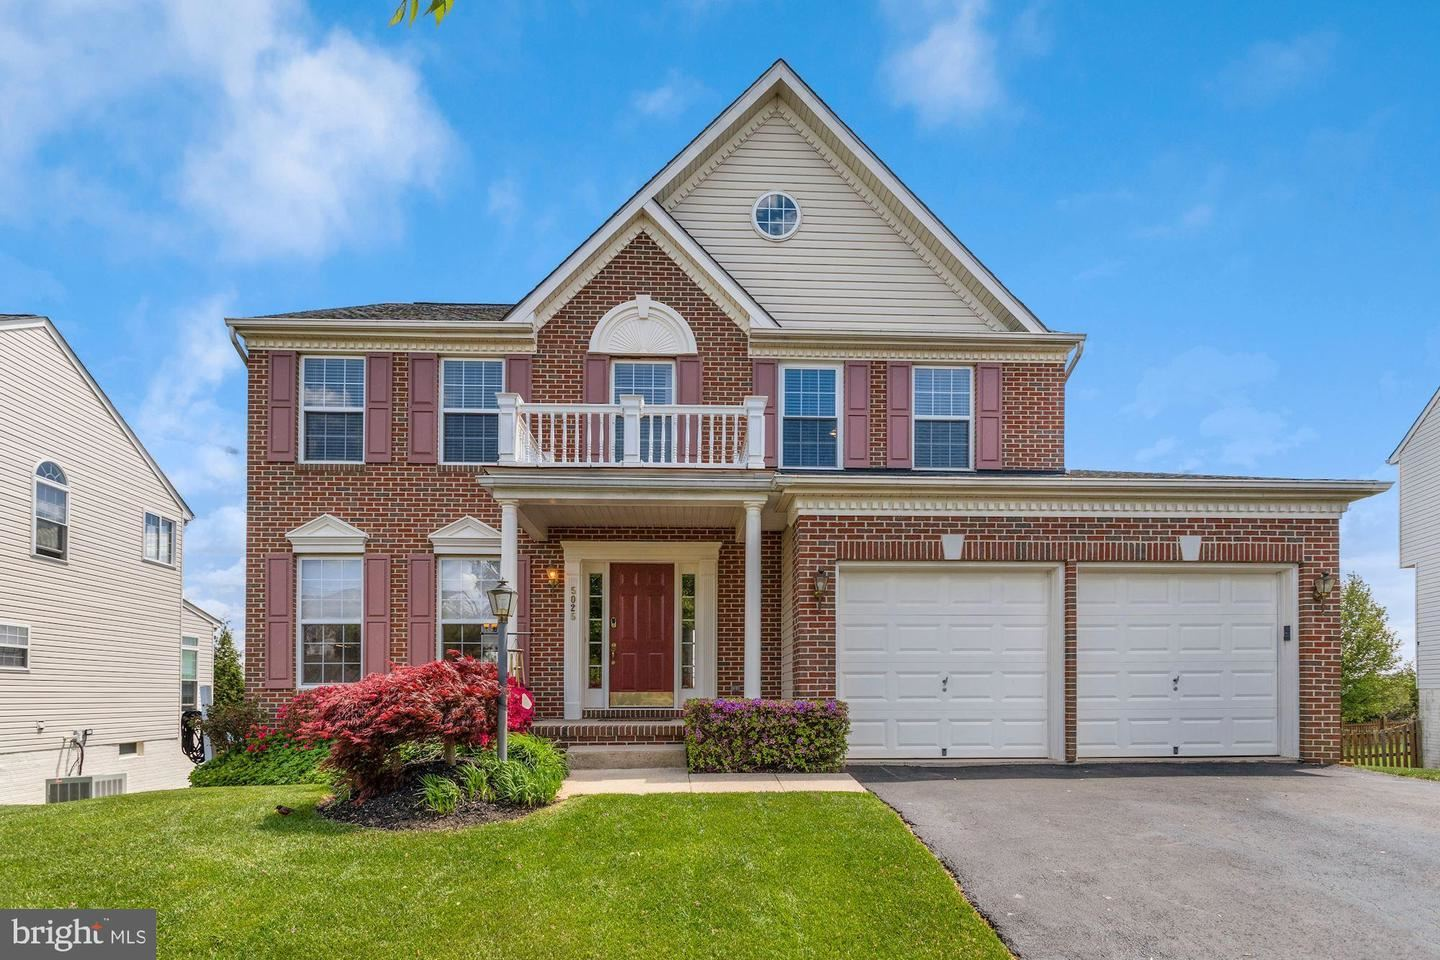 5025 FORGE HAVEN DR, Perry Hall, MD 21128 - MLS#: MDBC524004